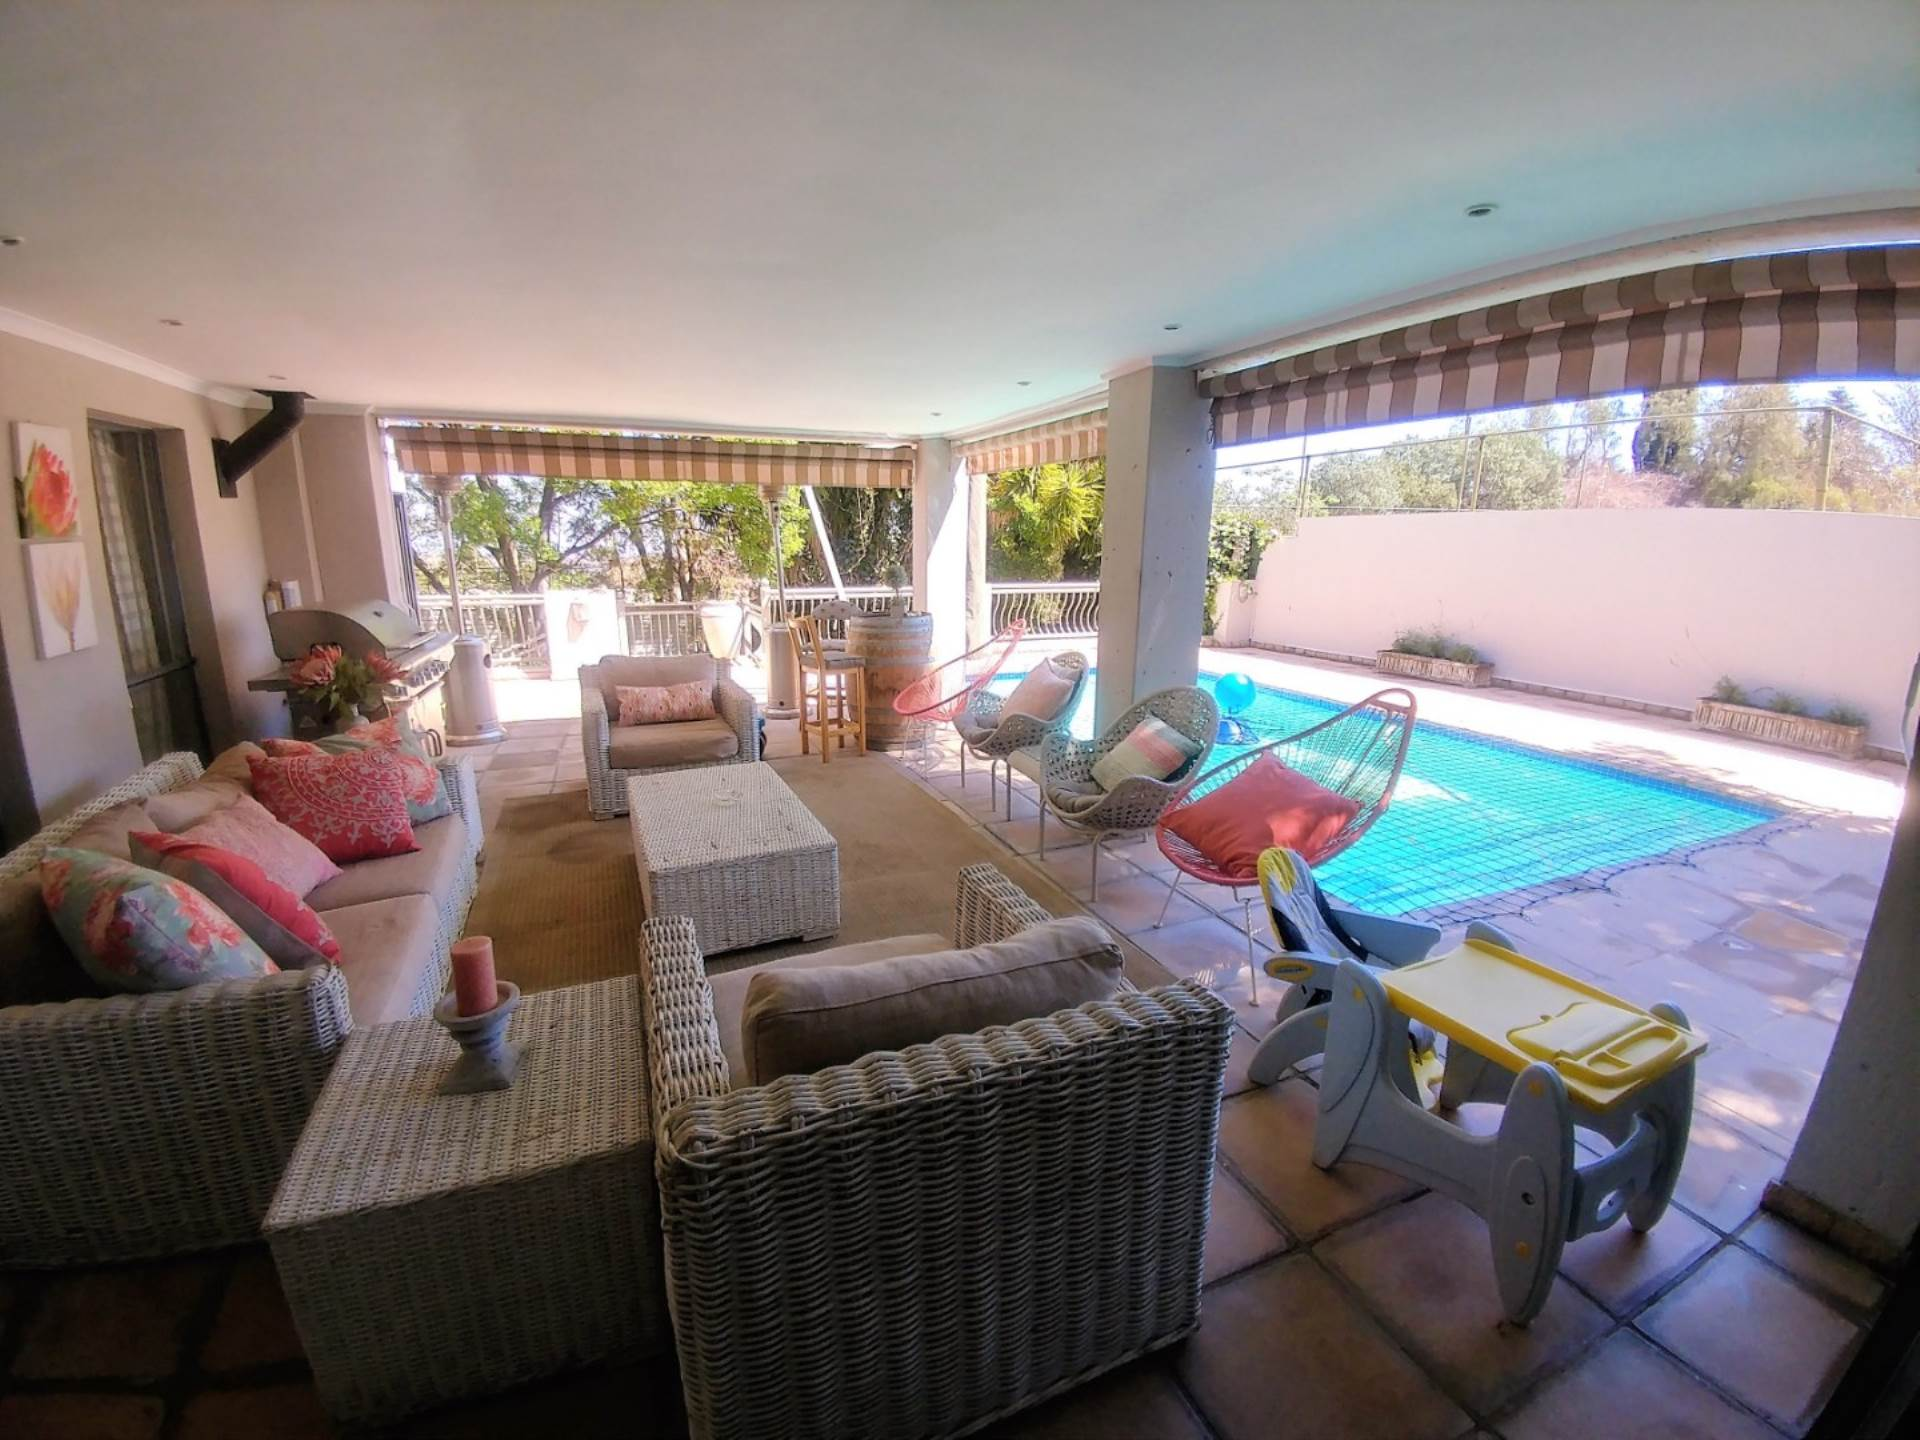 Waterkloof Ridge And Ext property for sale. Ref No: 13534818. Picture no 10